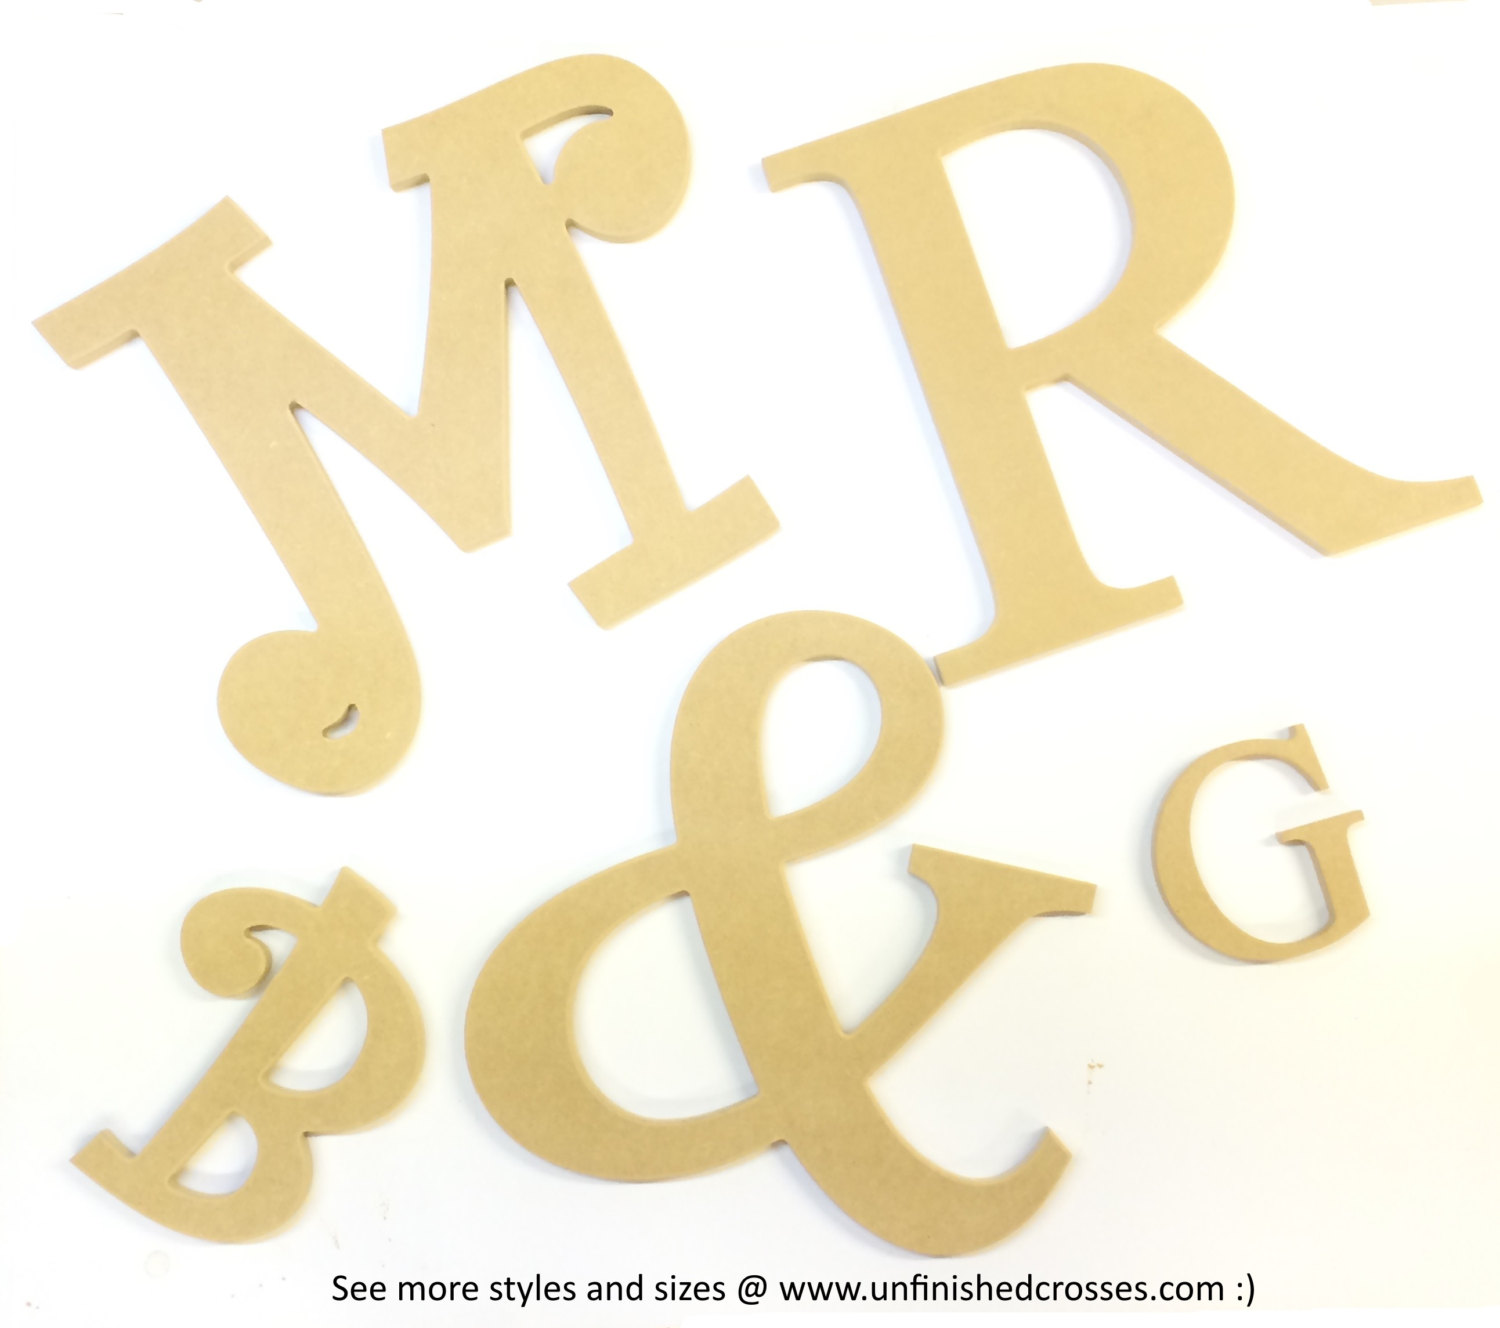 31 X 8 Script Mr Mrs Cursive Text Words Unfinished Diy Wood Craft Wooden Cutout To Sell